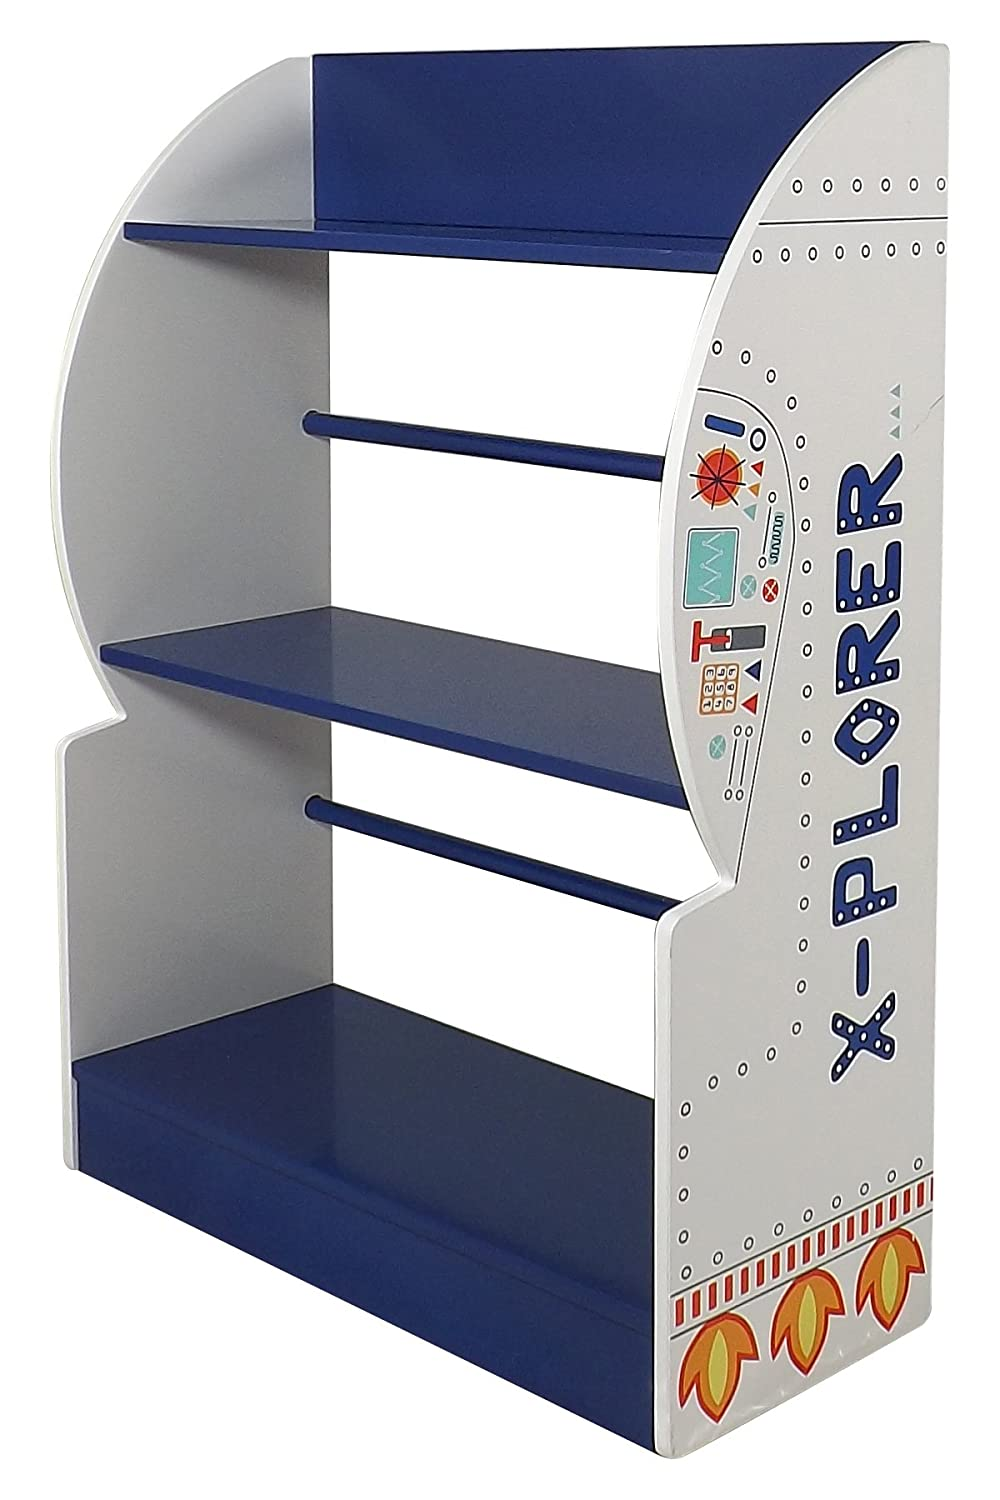 Kidsaw Explorer Bookcase, Wood, Blue, 24 x 60 x 80 cm Kidsaw Ltd EXBK